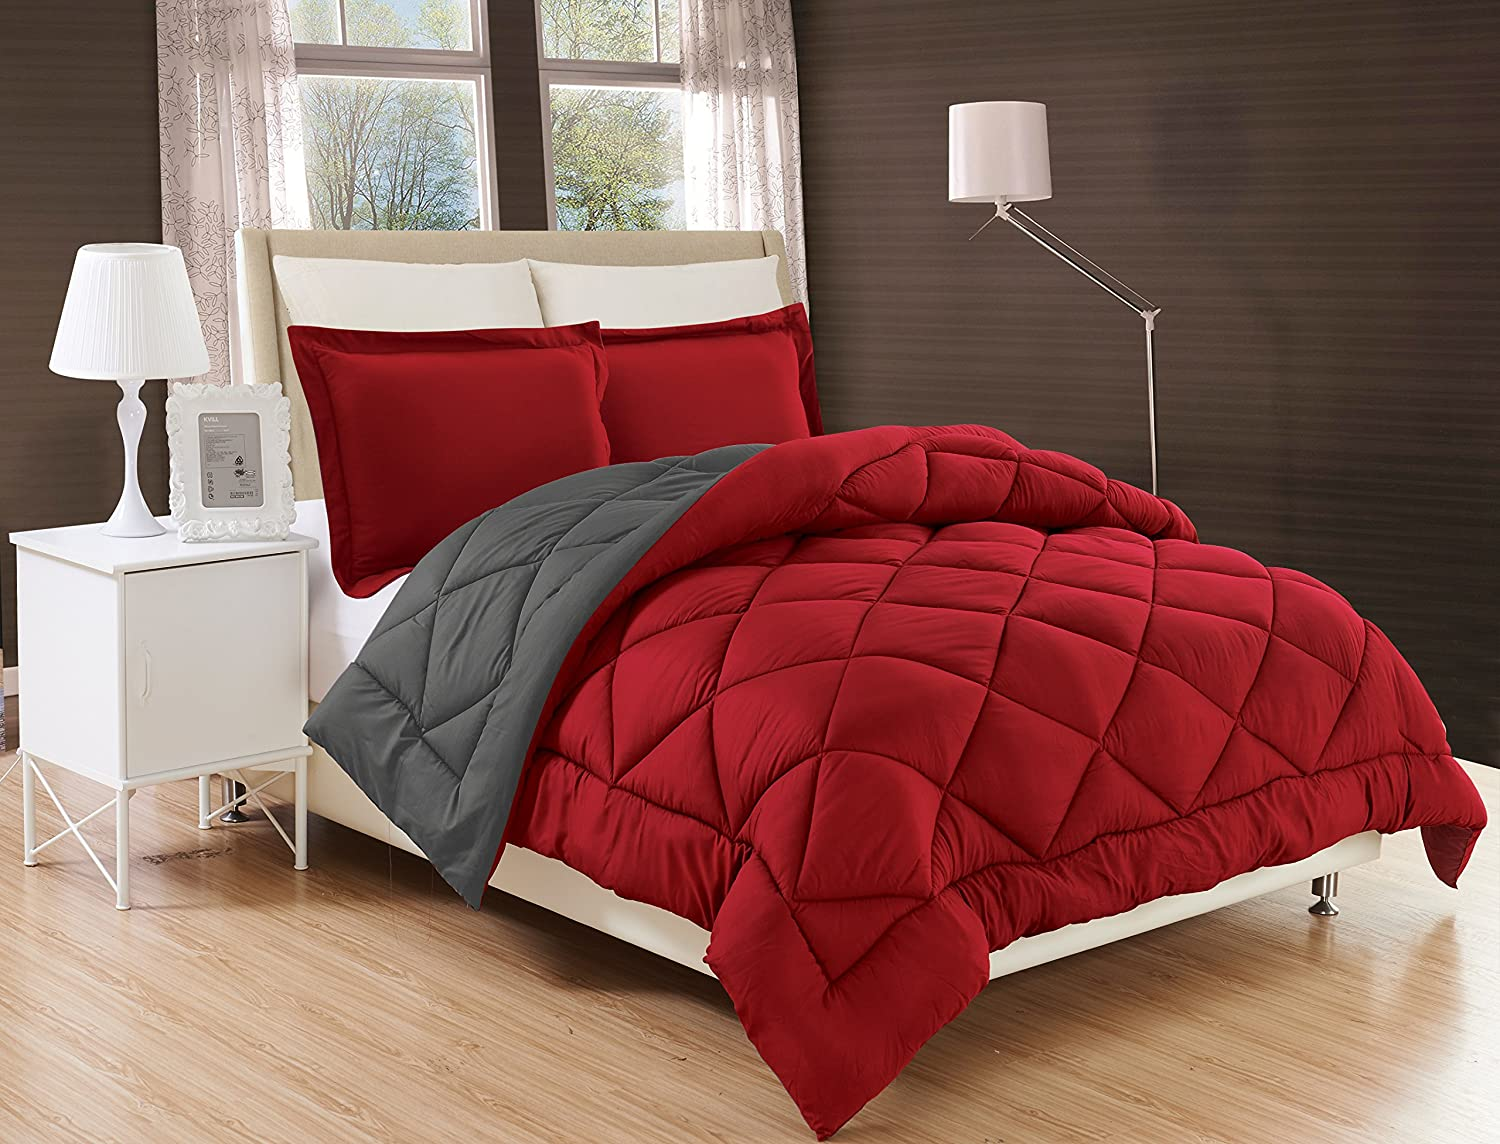 Alternative Reversible 2-Piece Comforter Set, Twin/Twin XL, Burgundy/Grey